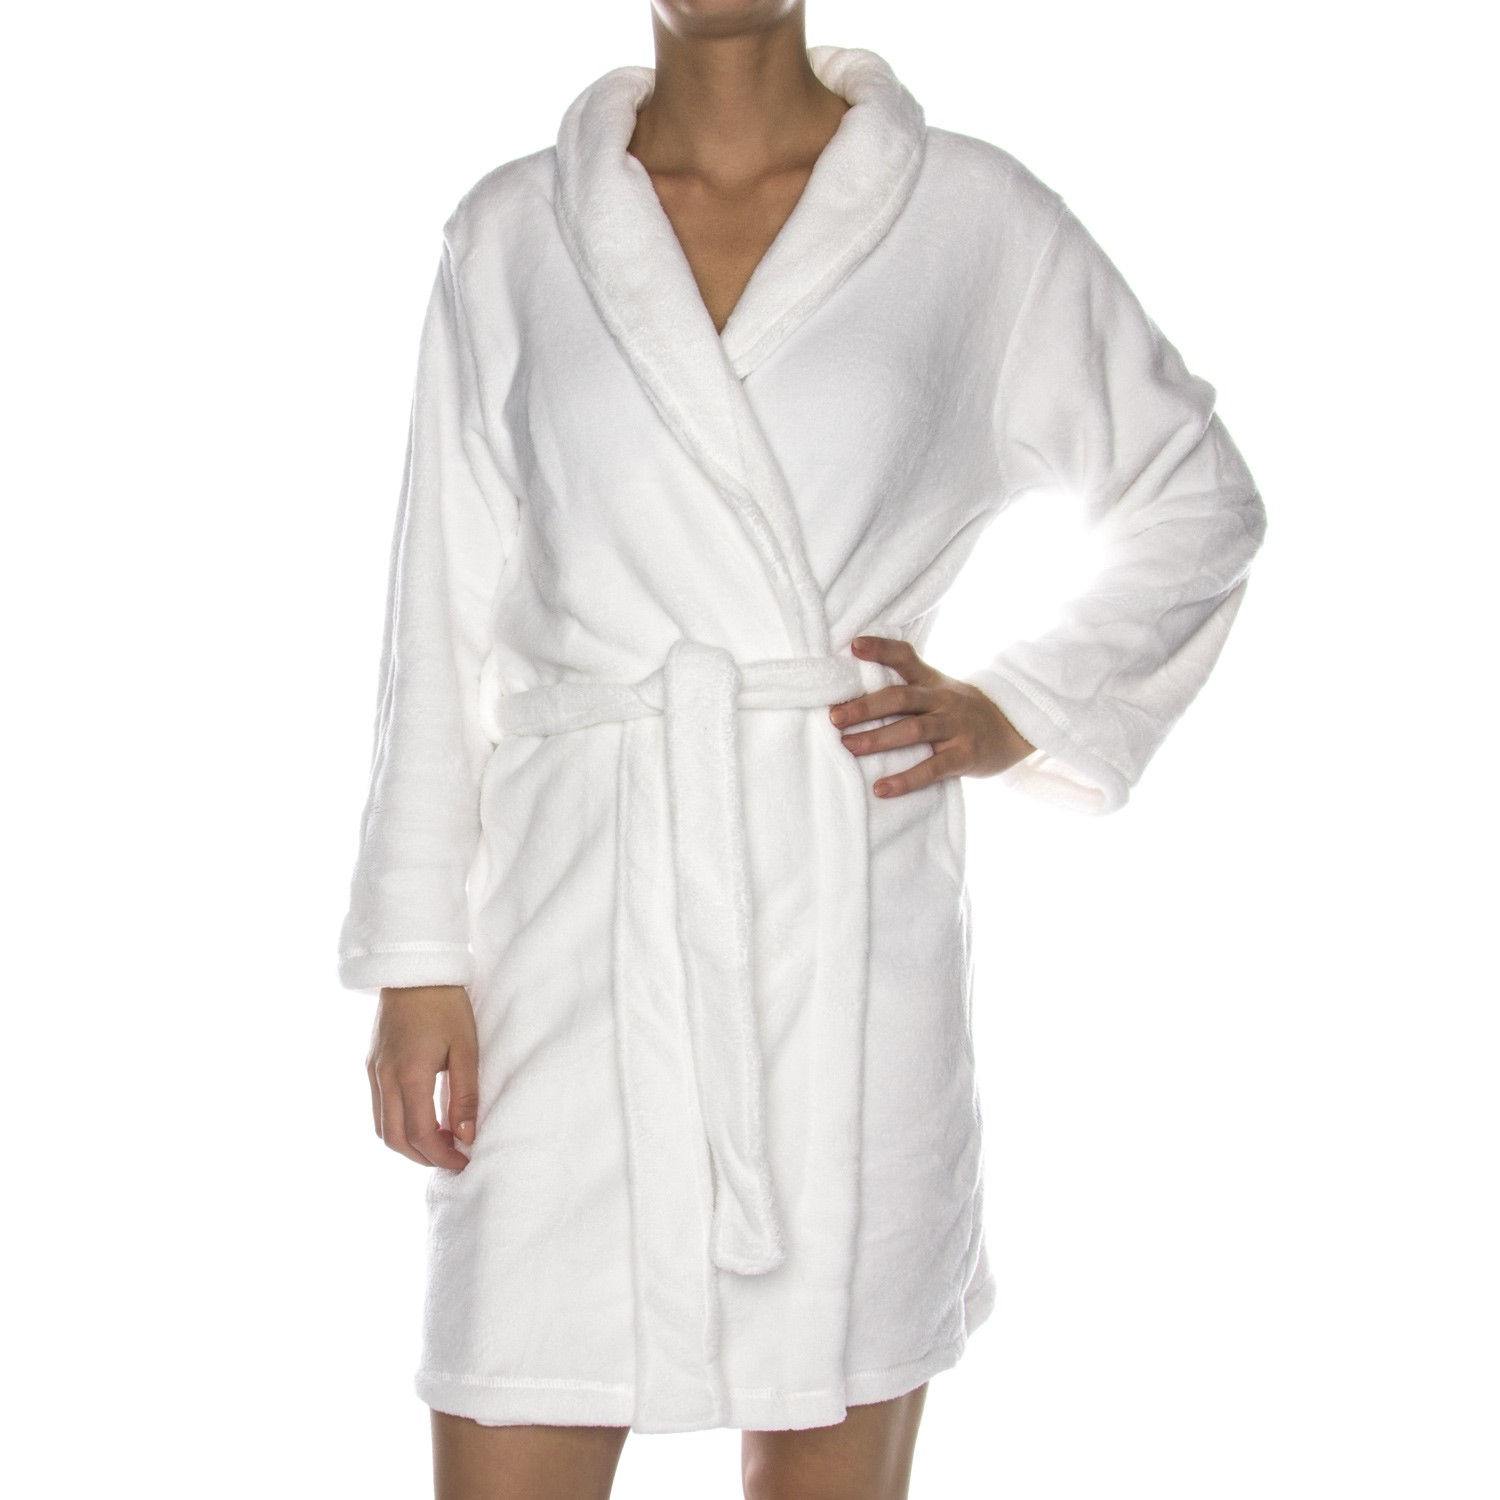 ... Missya Cornflocker Fleece Robe Short ... online store 75fb4 4c8a4 ... c35f60223